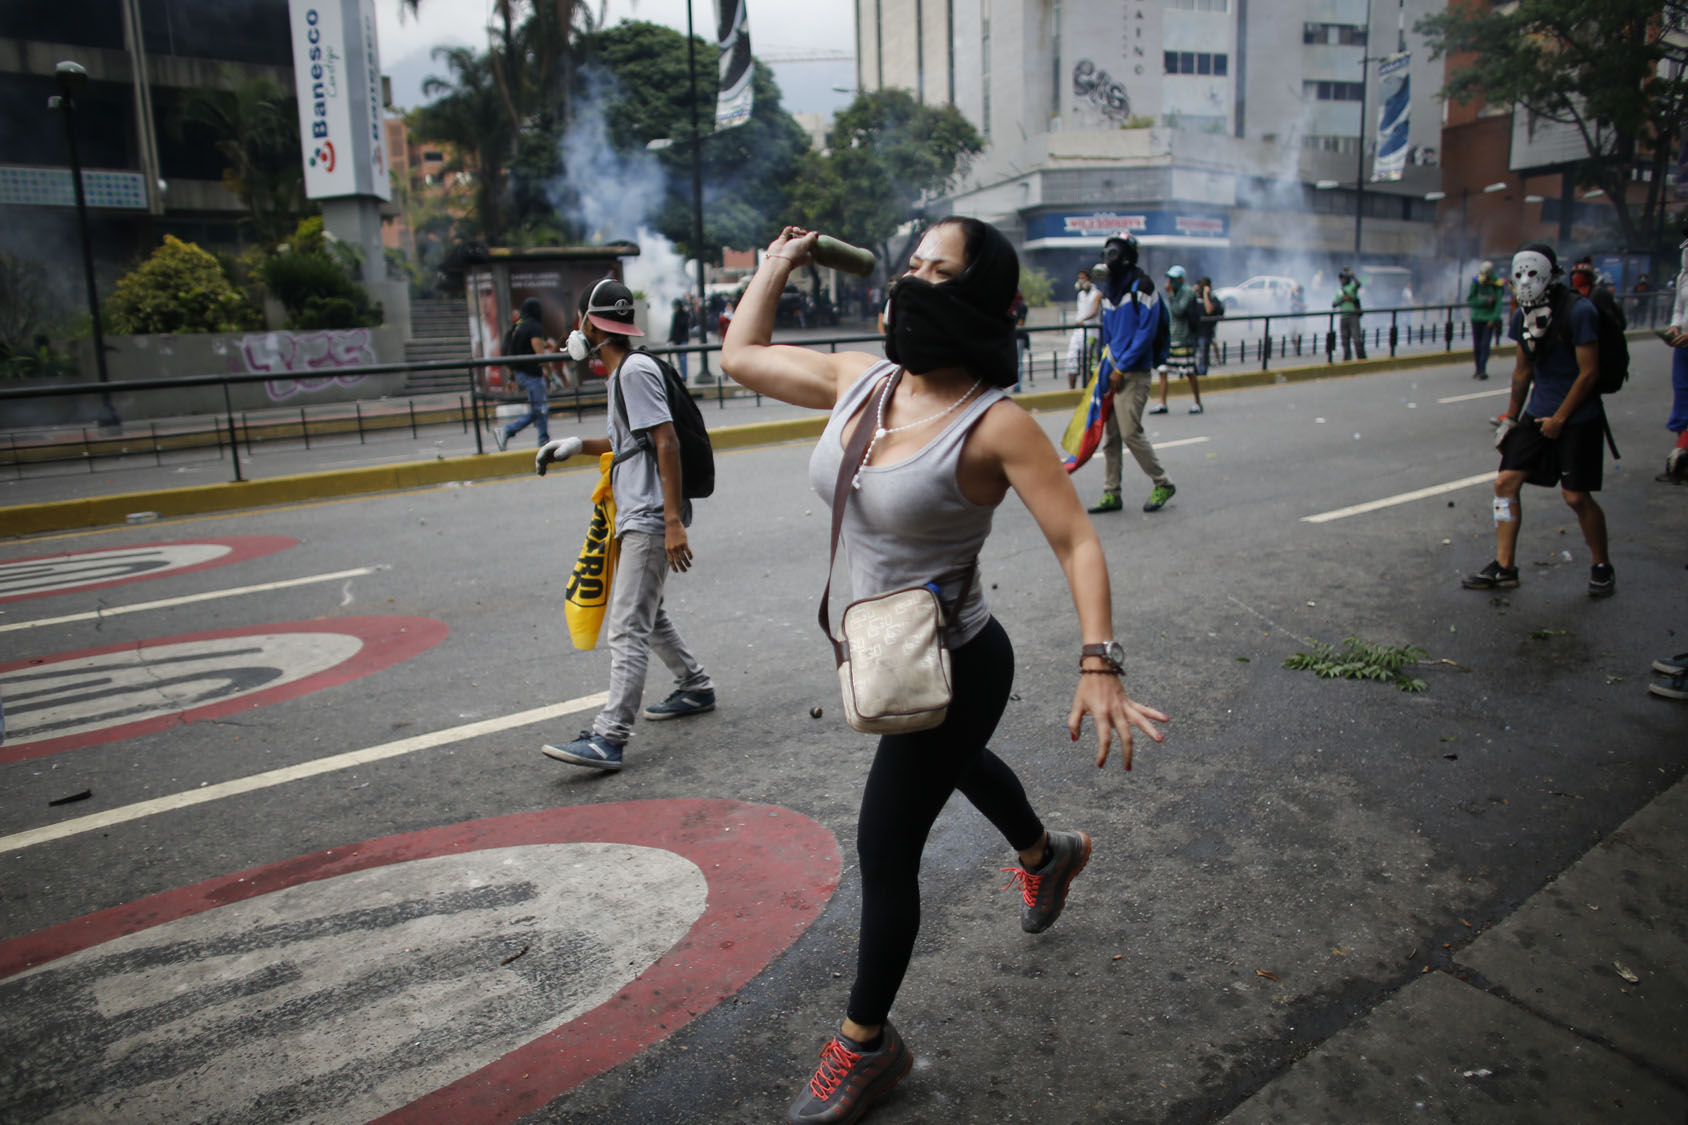 Venezuela protests: What you need to know - CNN